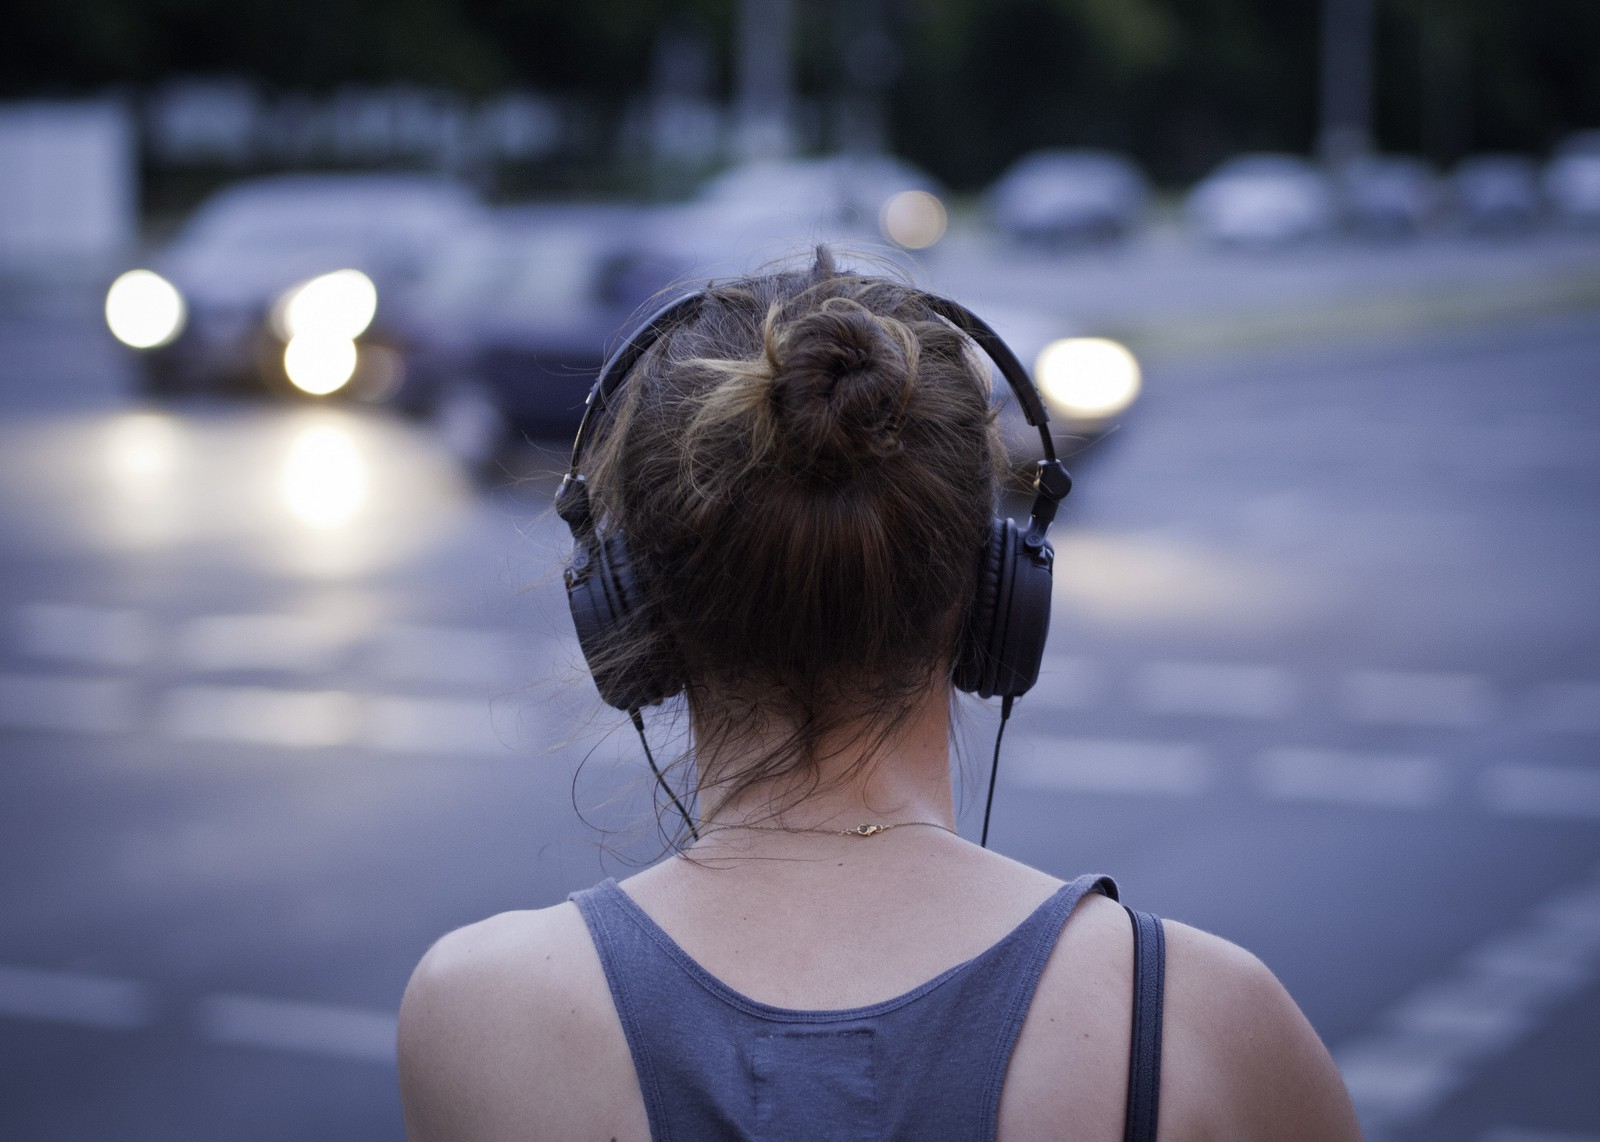 How not to talk to a woman who is wearing headphones ccuart Gallery